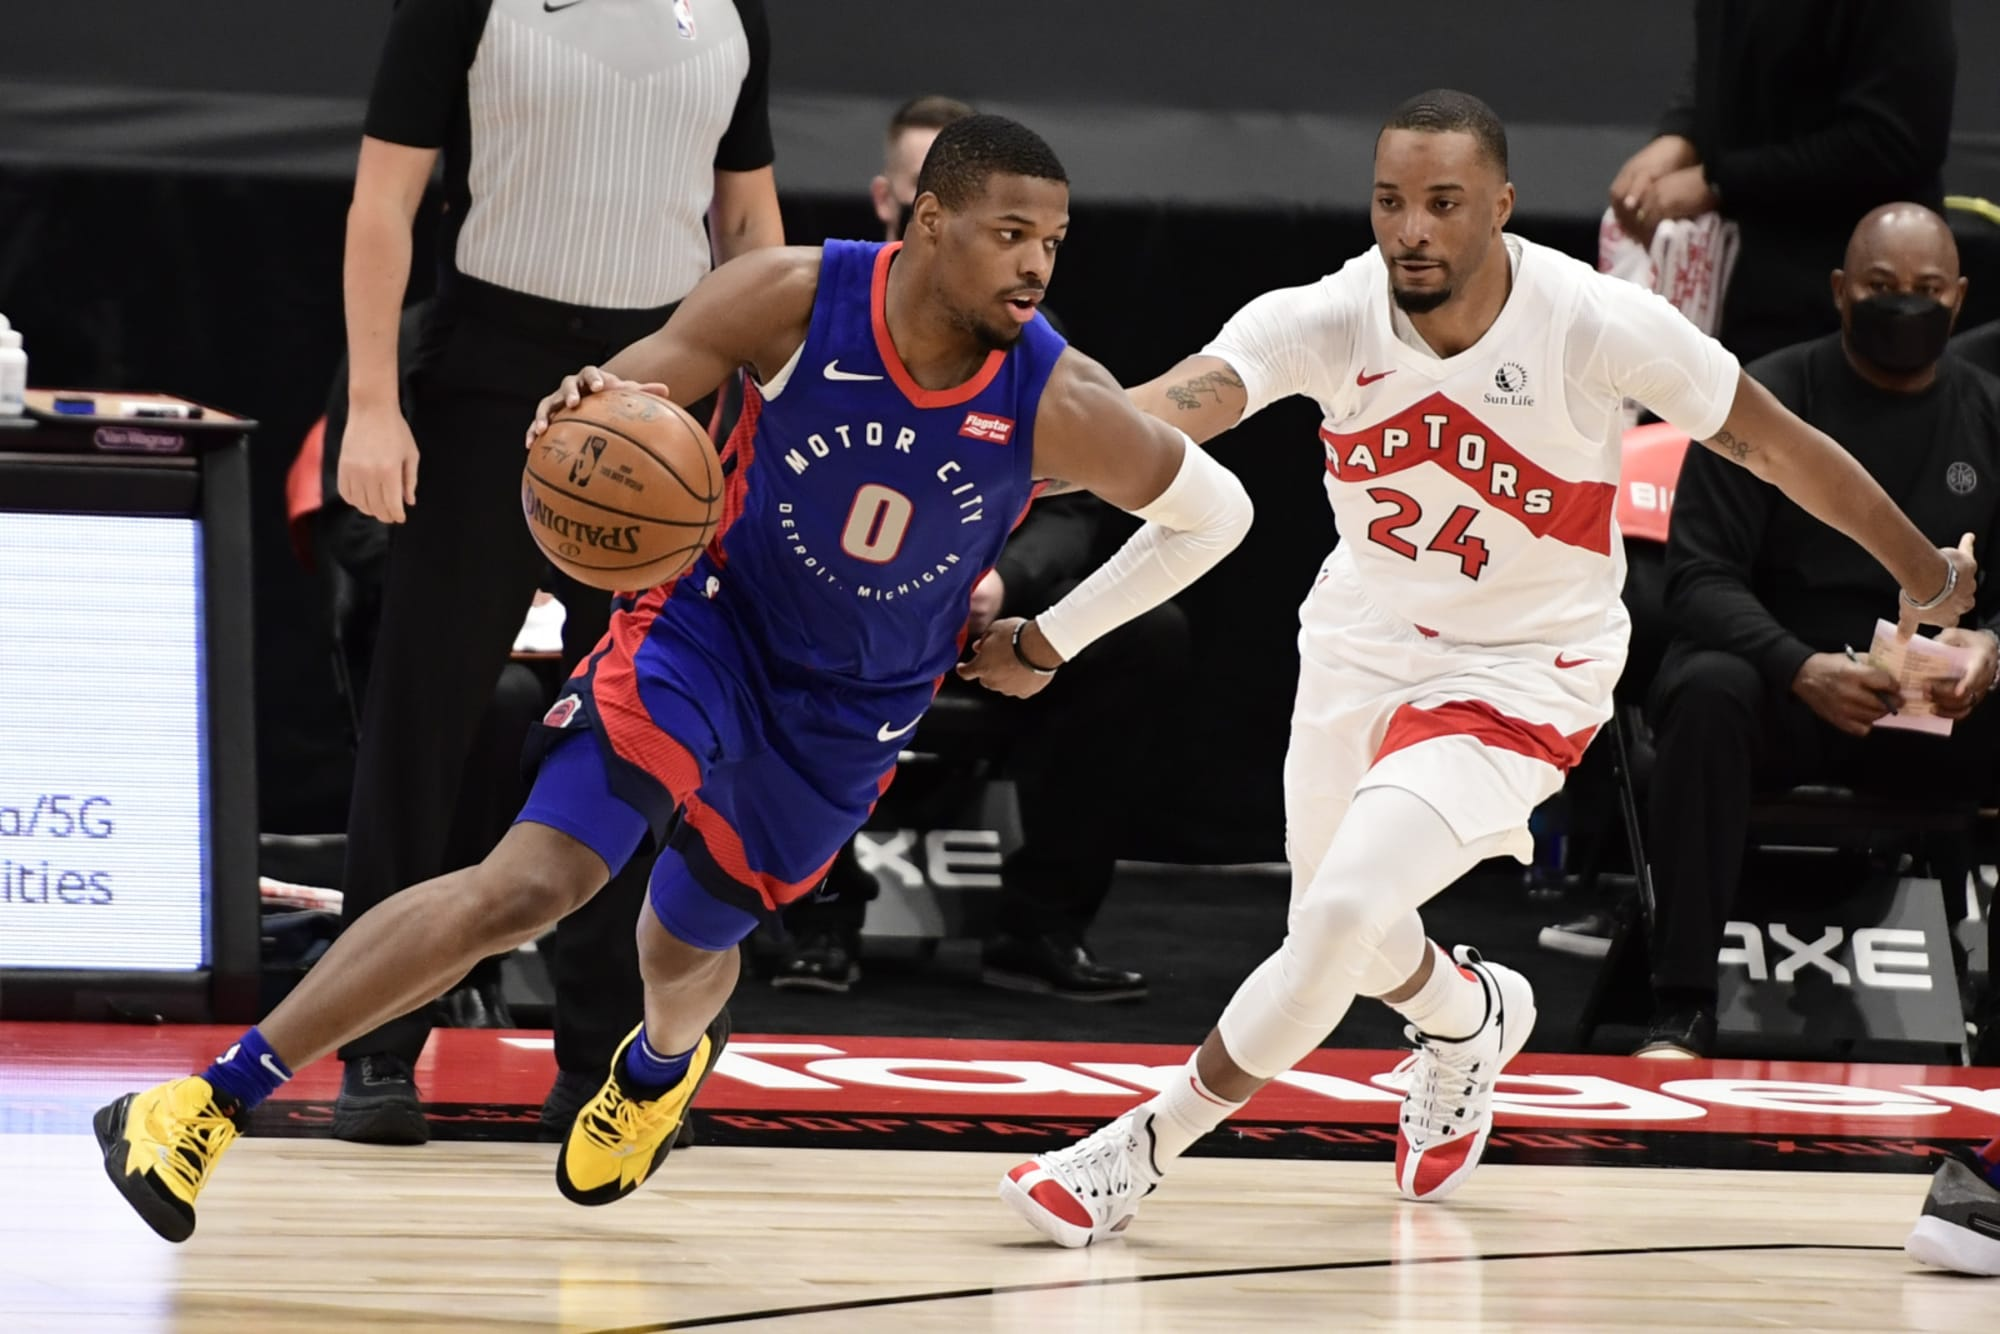 Shorthanded Raptors demolished by lowly Pistons in poor showing